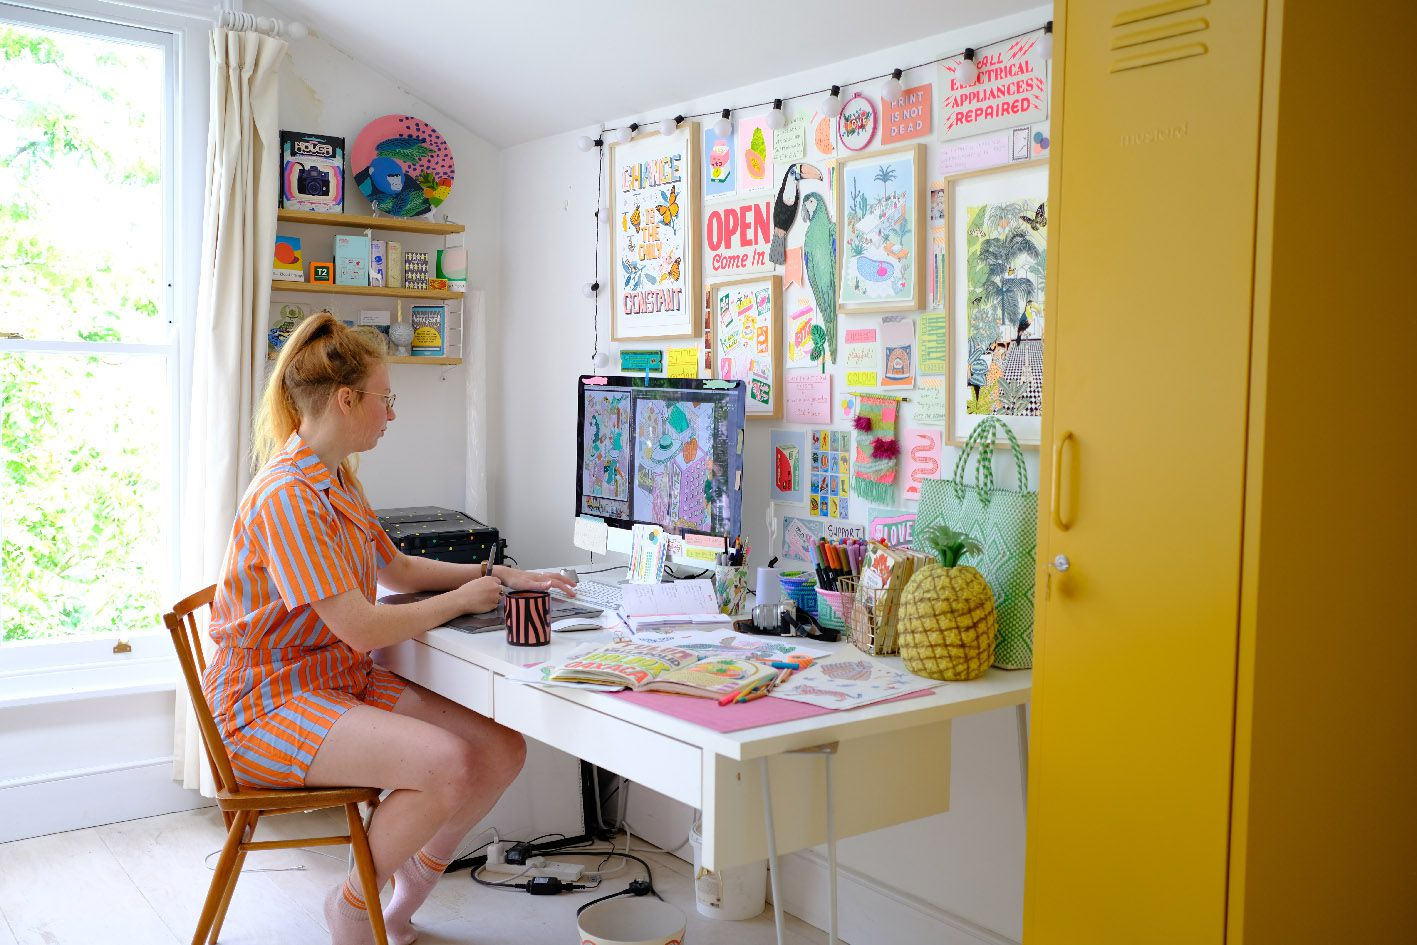 Jacqueline Colley illustrating colorful wallpaper designs in her home studio